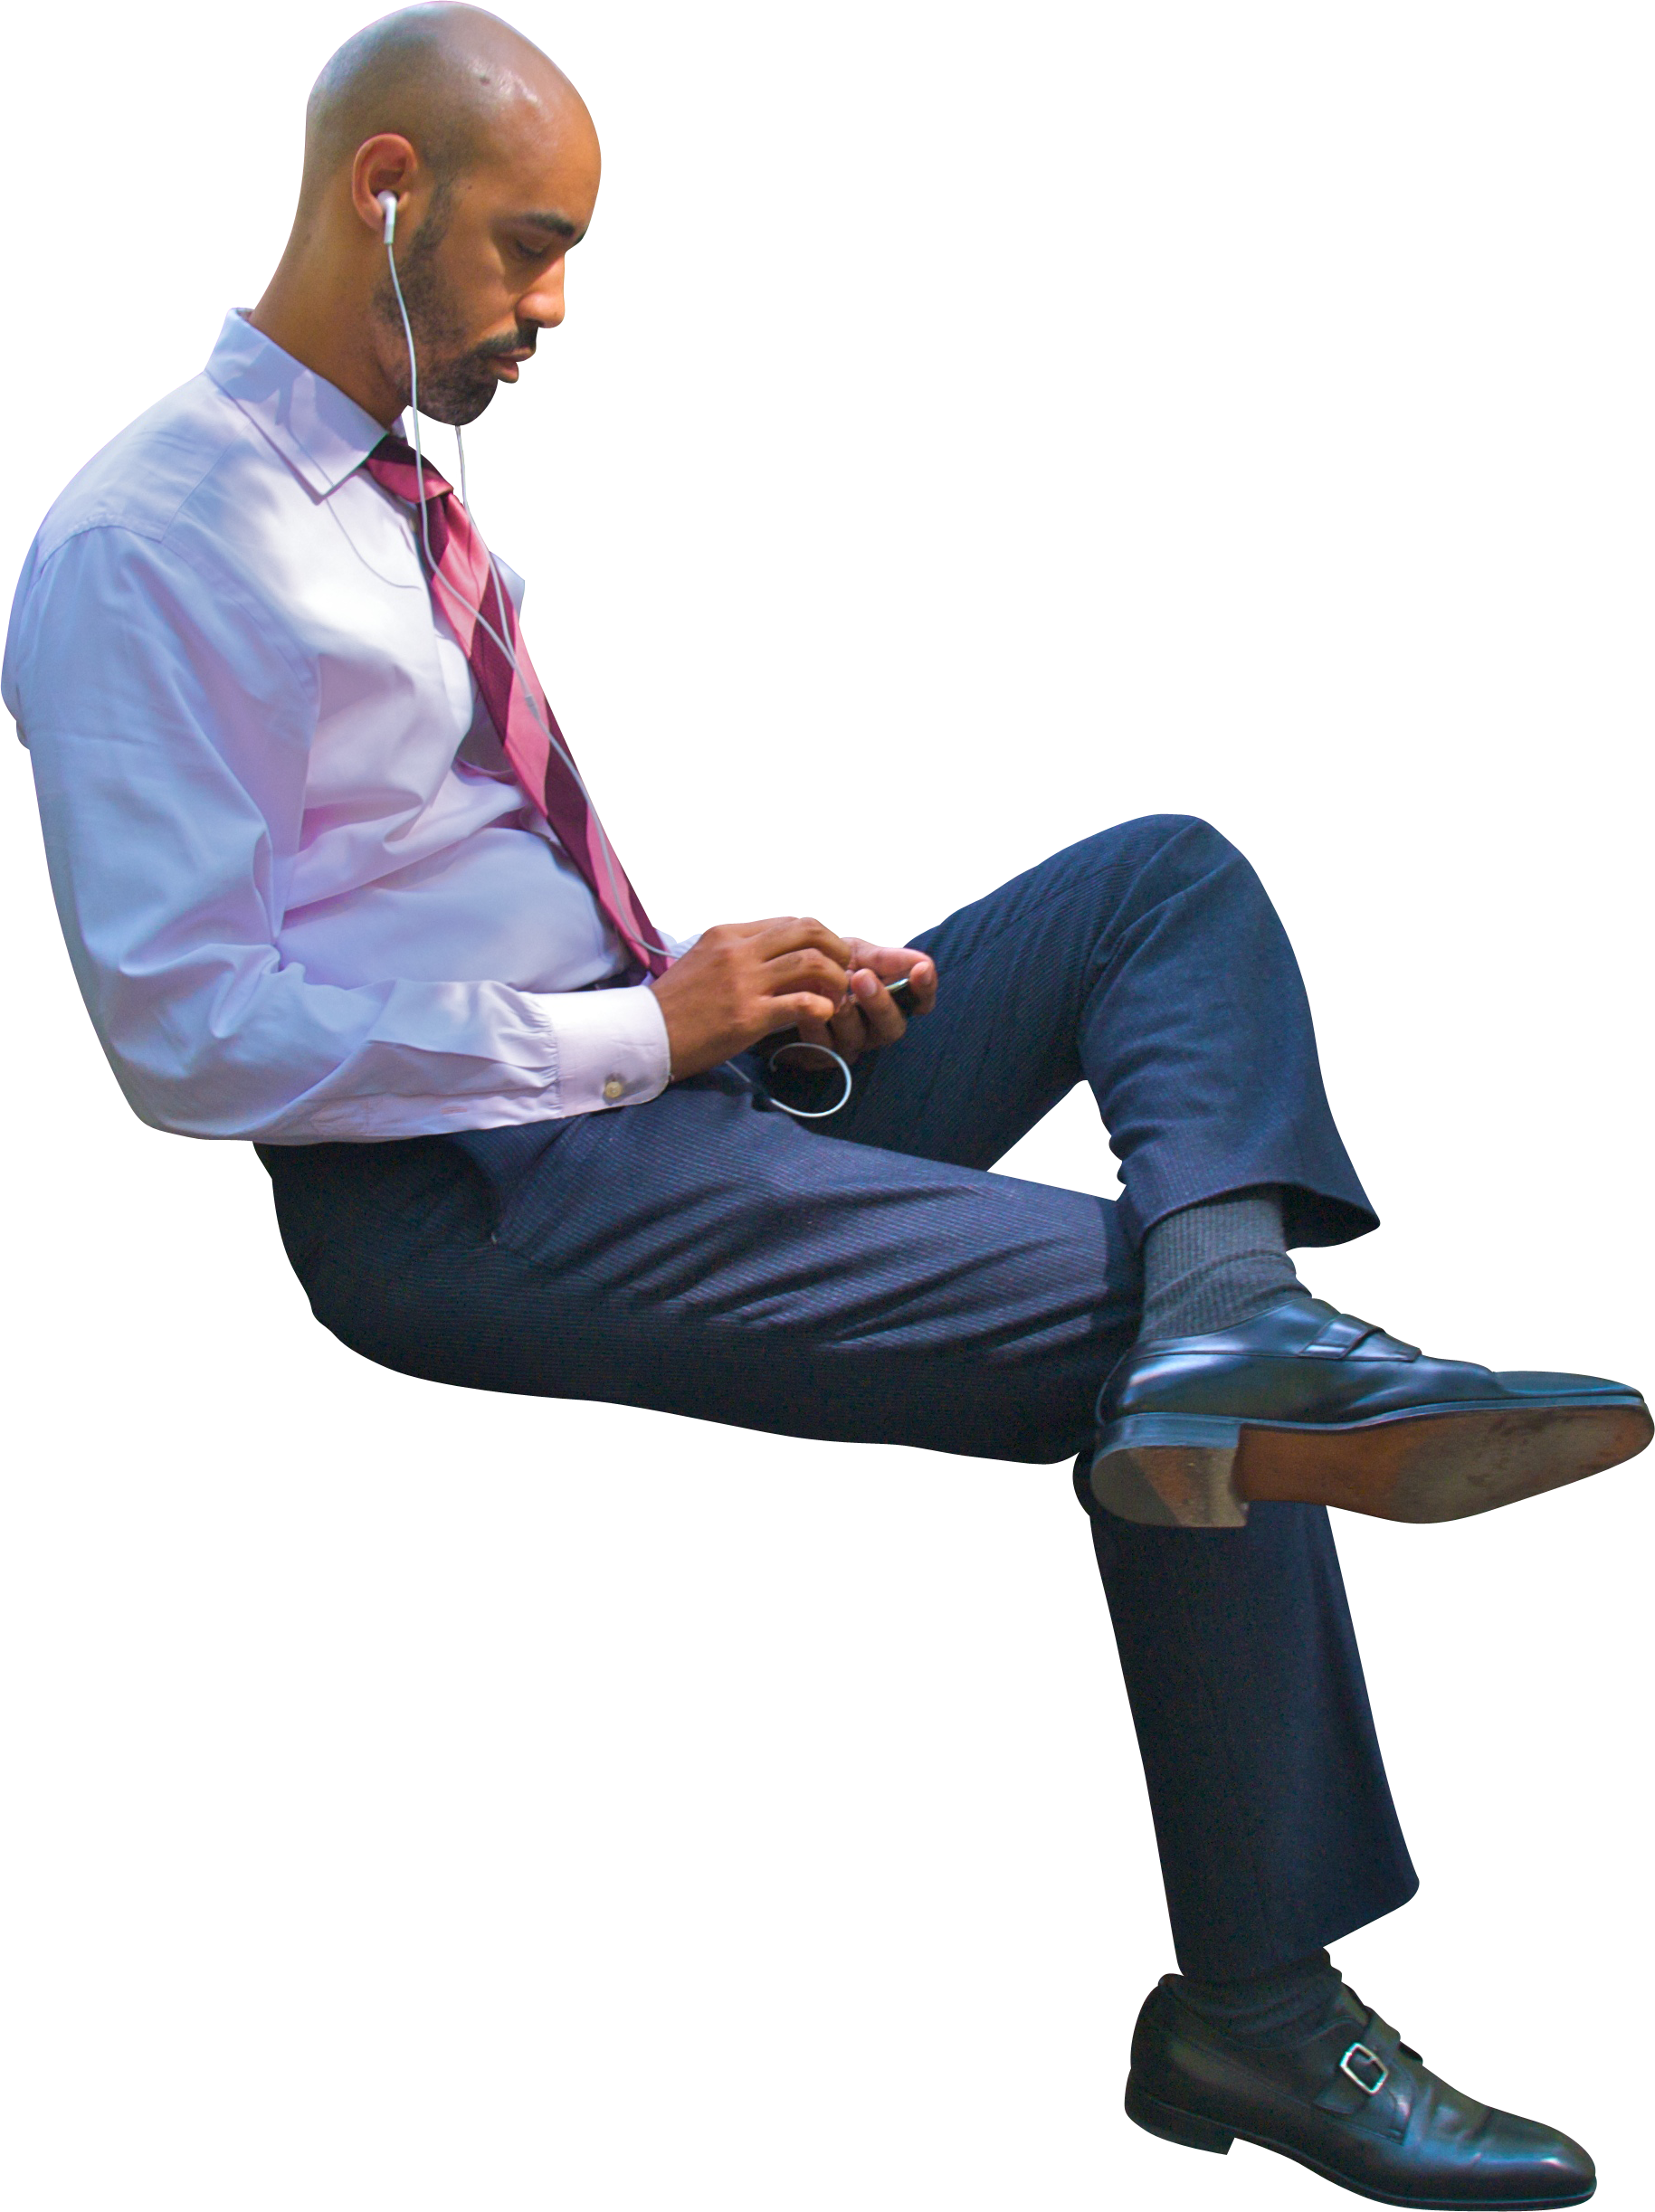 Person sitting in chair back view png. Man image purepng free